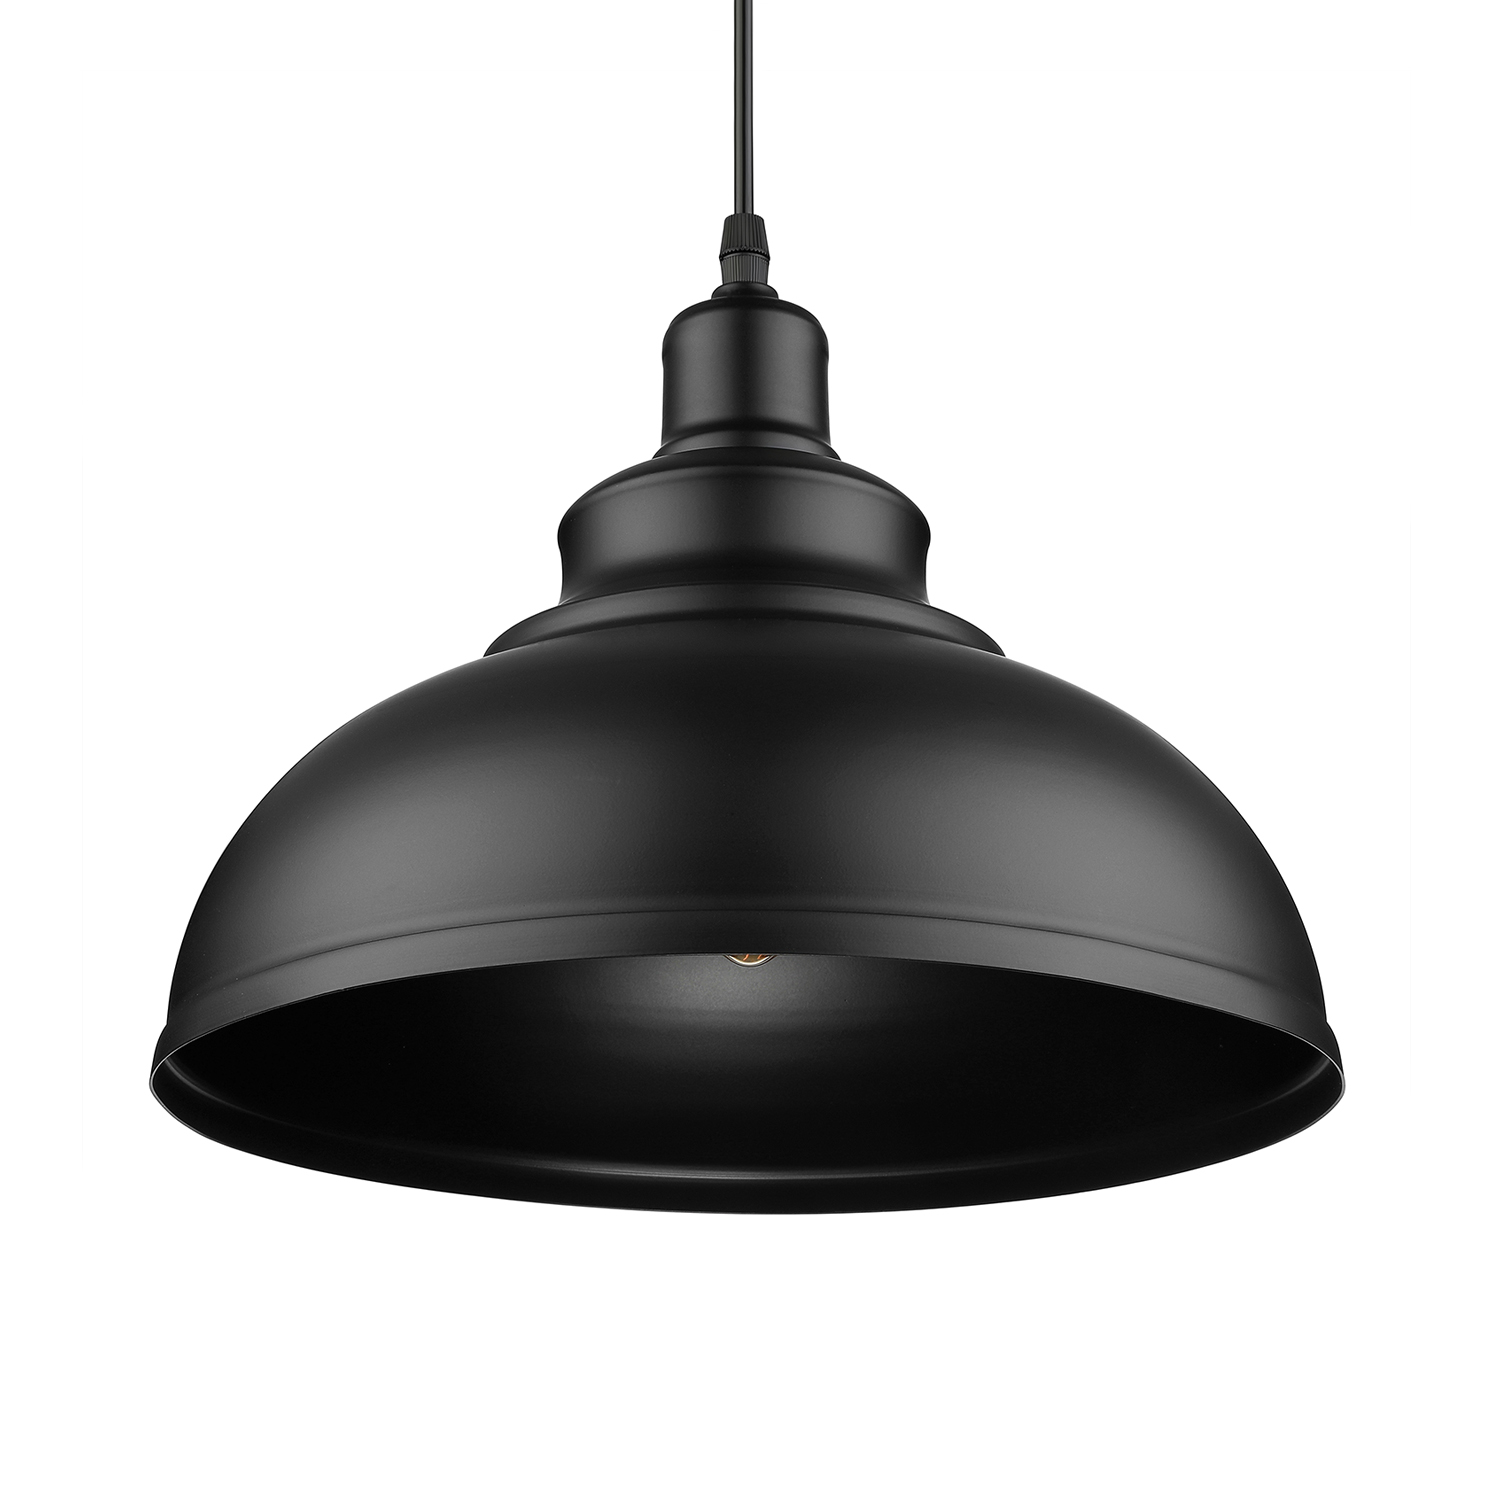 Industrial Metal Dome Pendant Light In Black For Kitchen Island Restaurant Dining Table Beautifulhalo Com